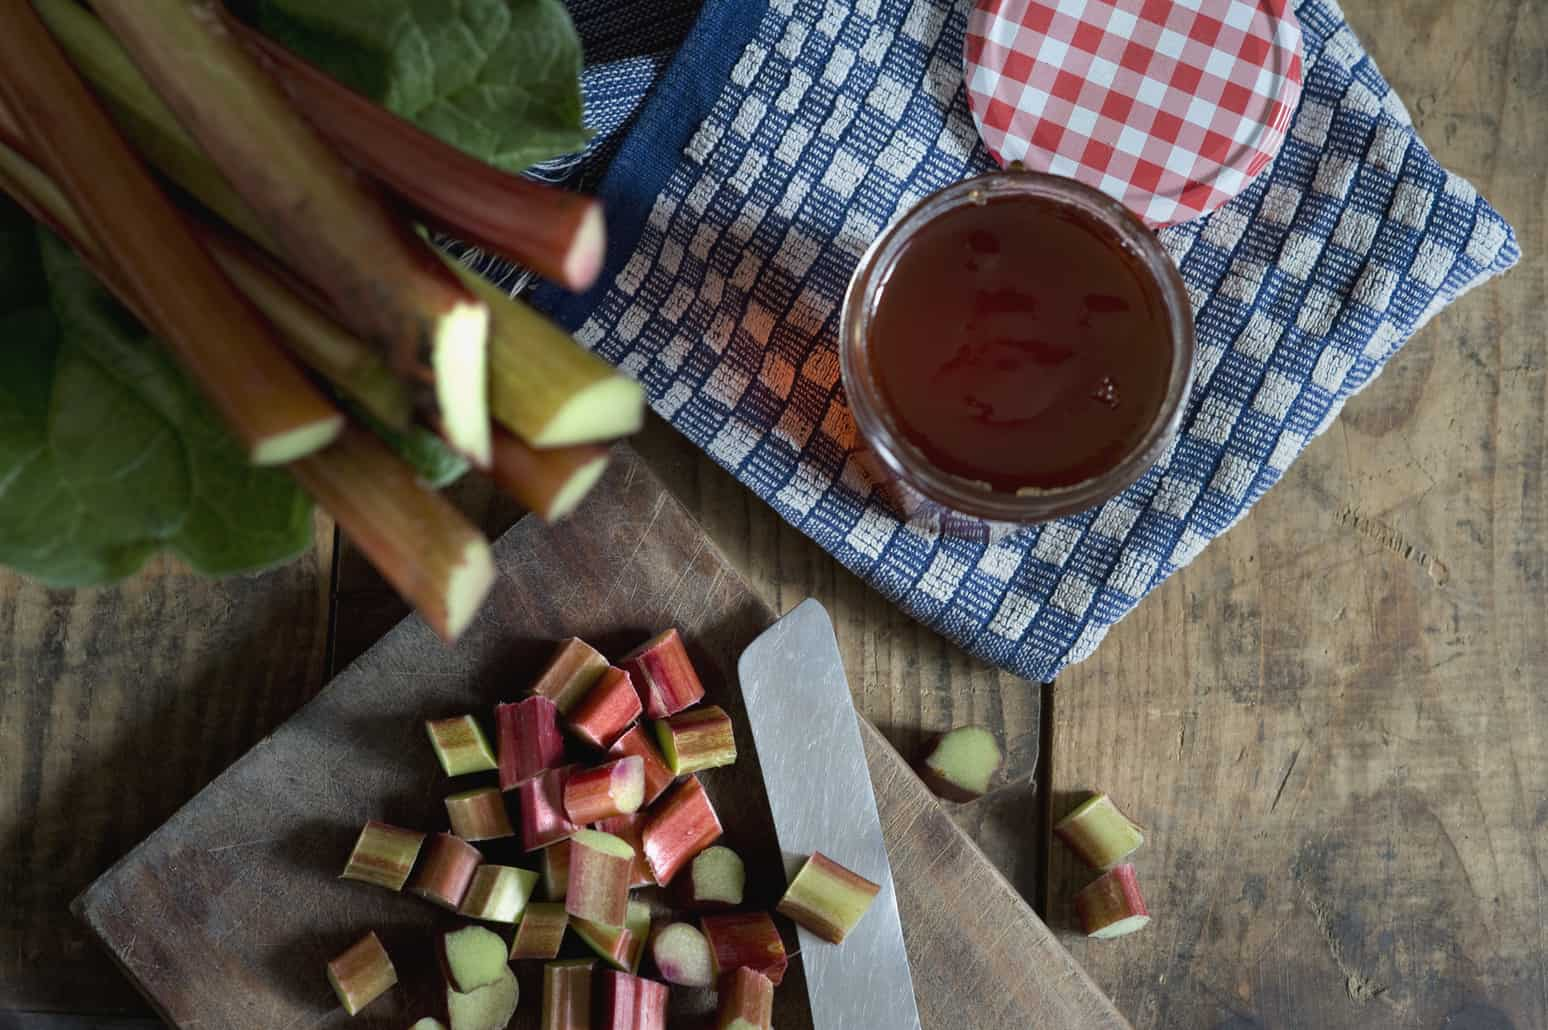 Sliced And Whole Rhubarb And Jam Jar Of Rhubarb Jelly On Wood, Elevated View